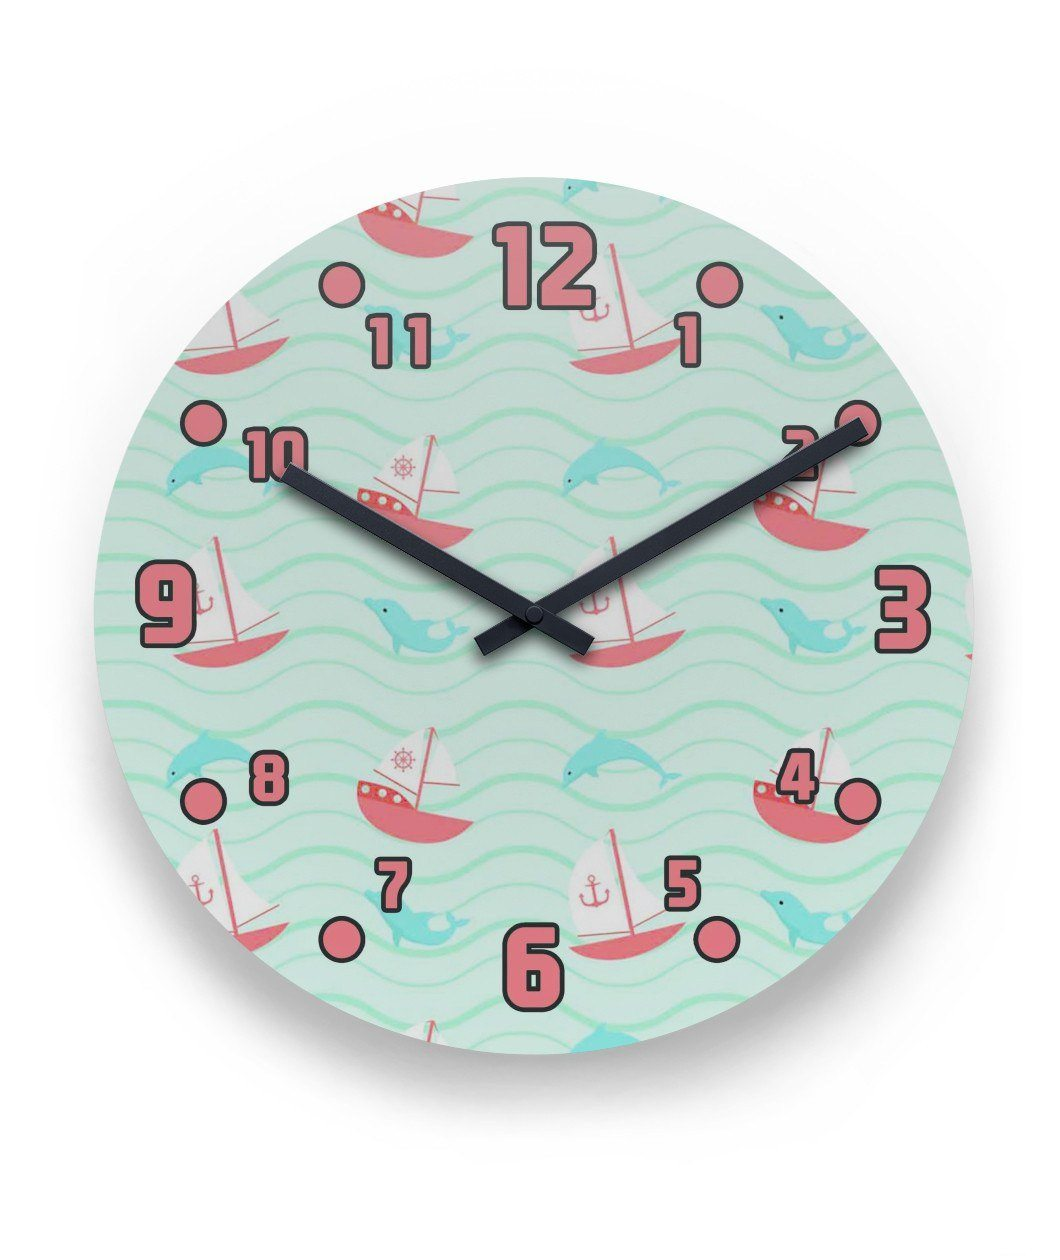 Dolphin 2 Wall Clock